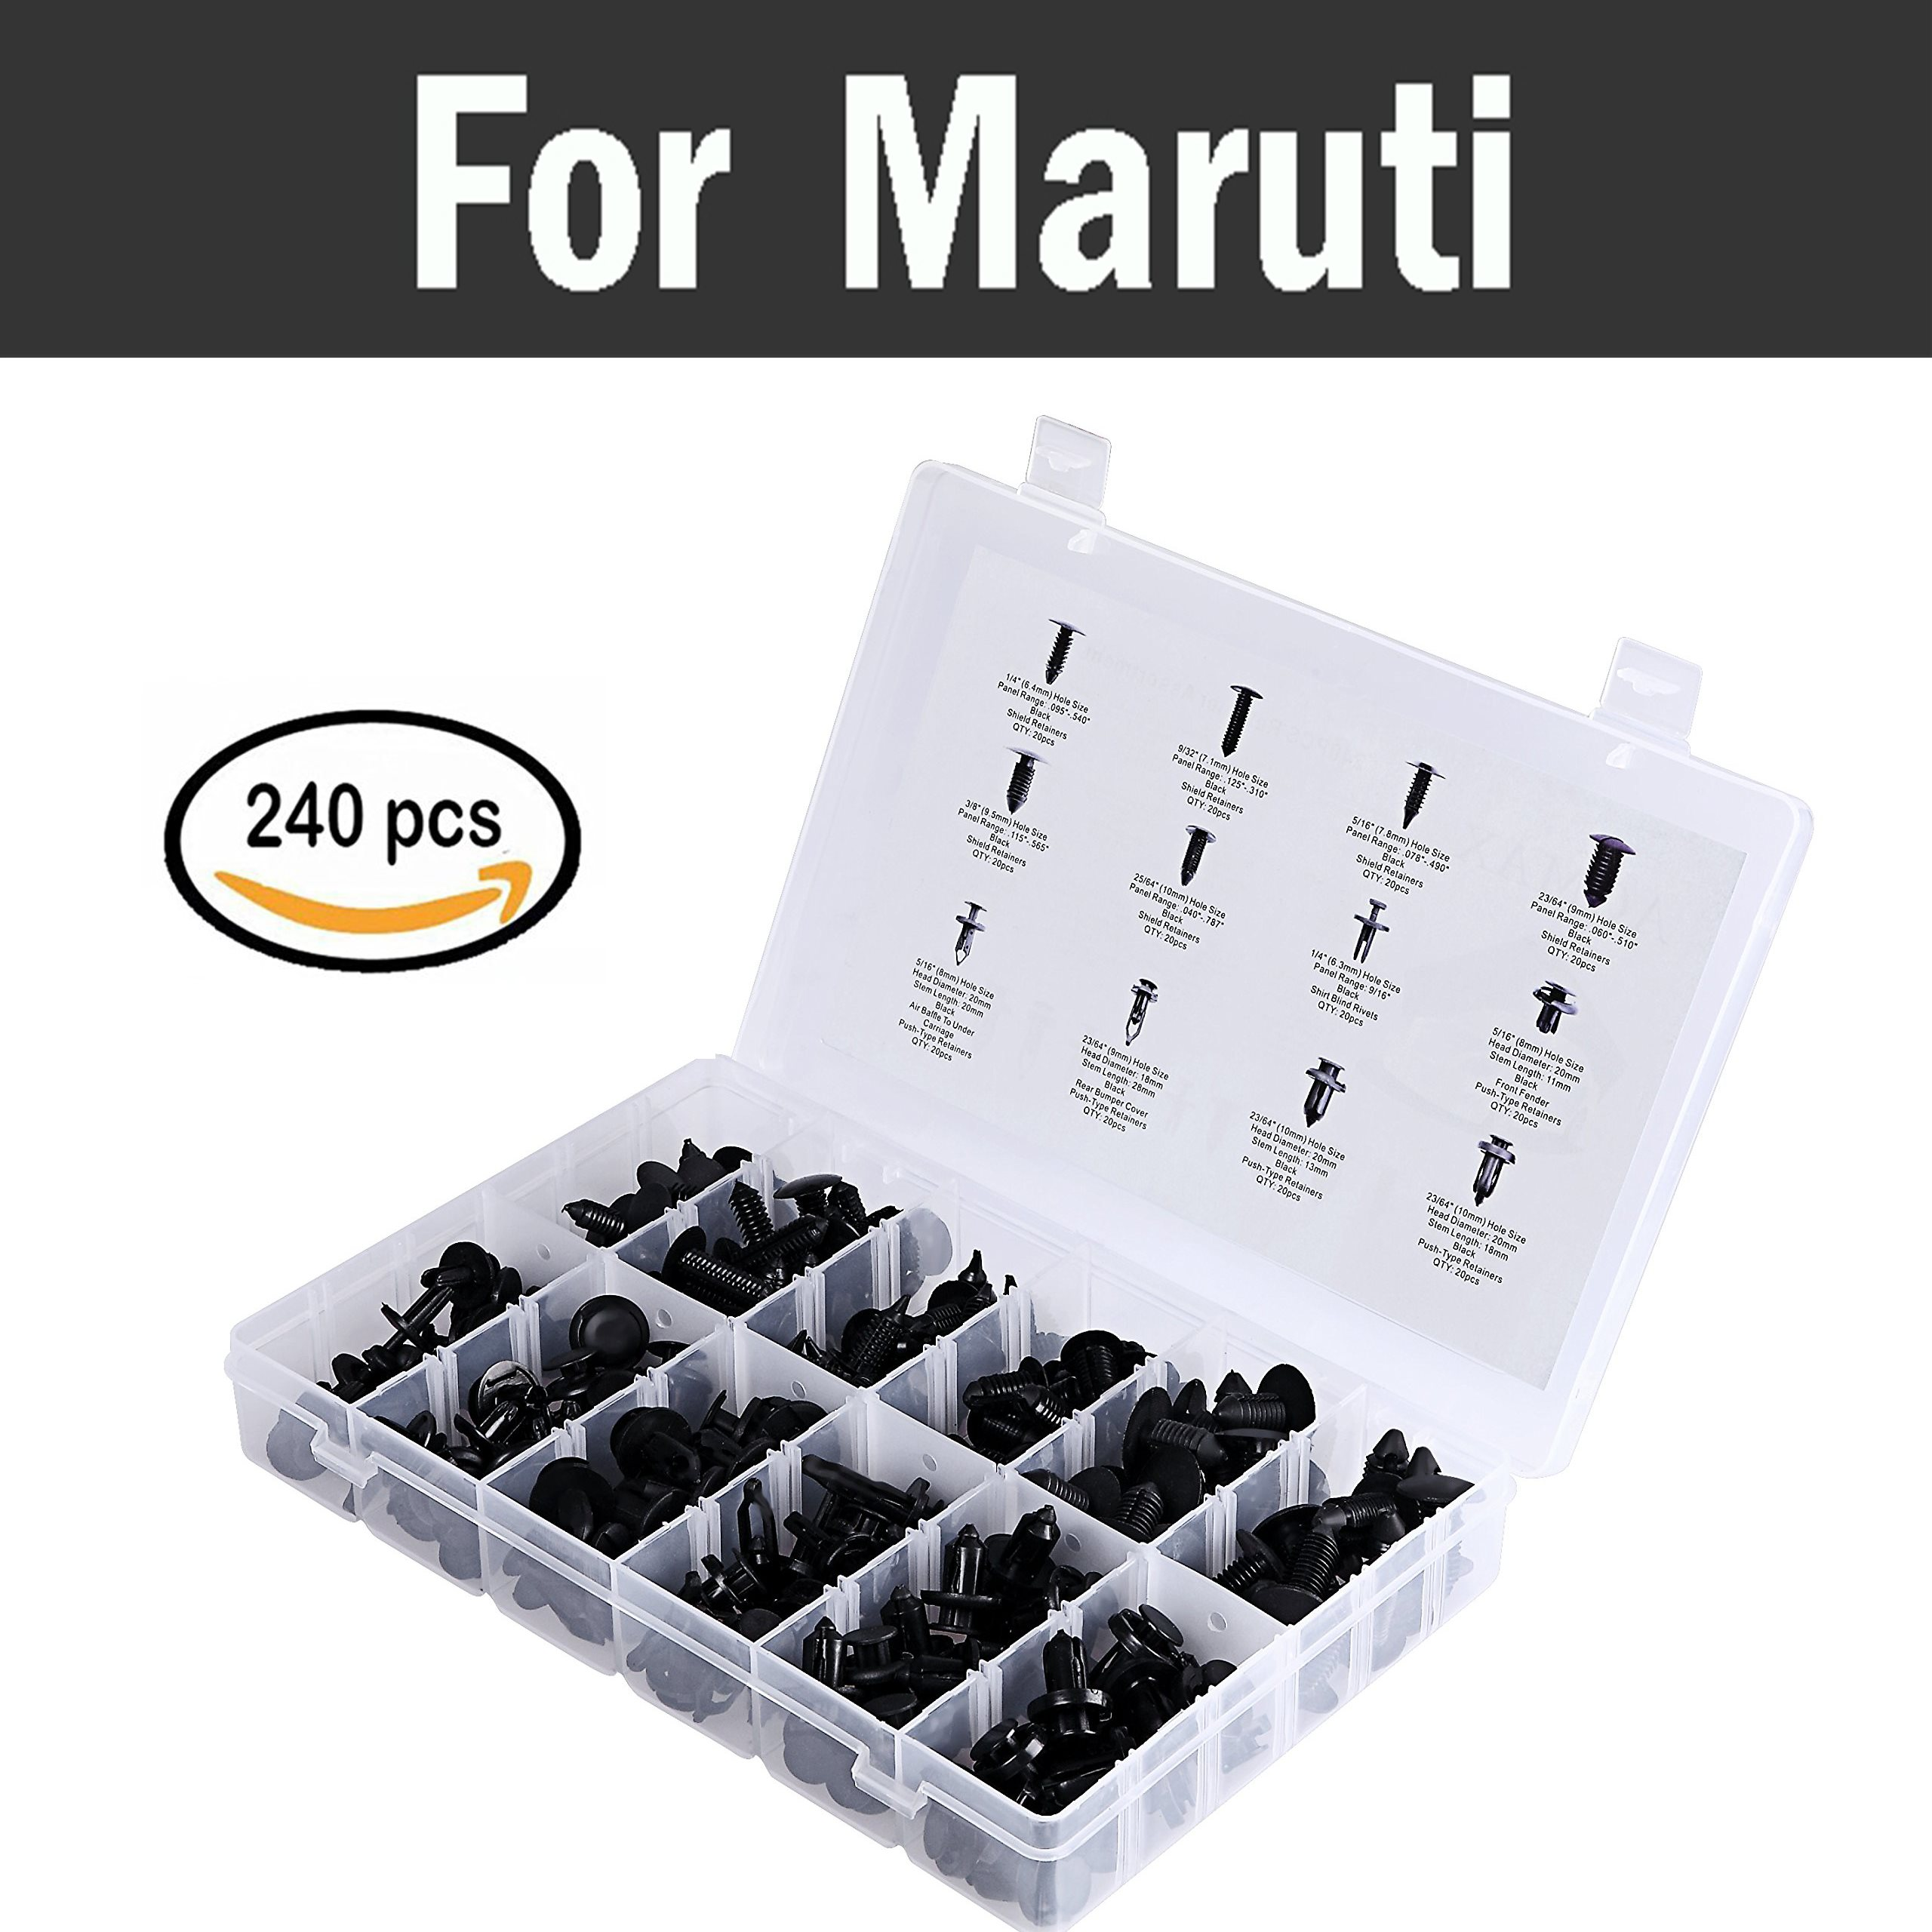 240pcs Car Retainer Rivet Clips Kit 12sizes Push Pin Rivets Set Rivets For Maruti 800 Alto Baleno Esteem Gypsy Zen